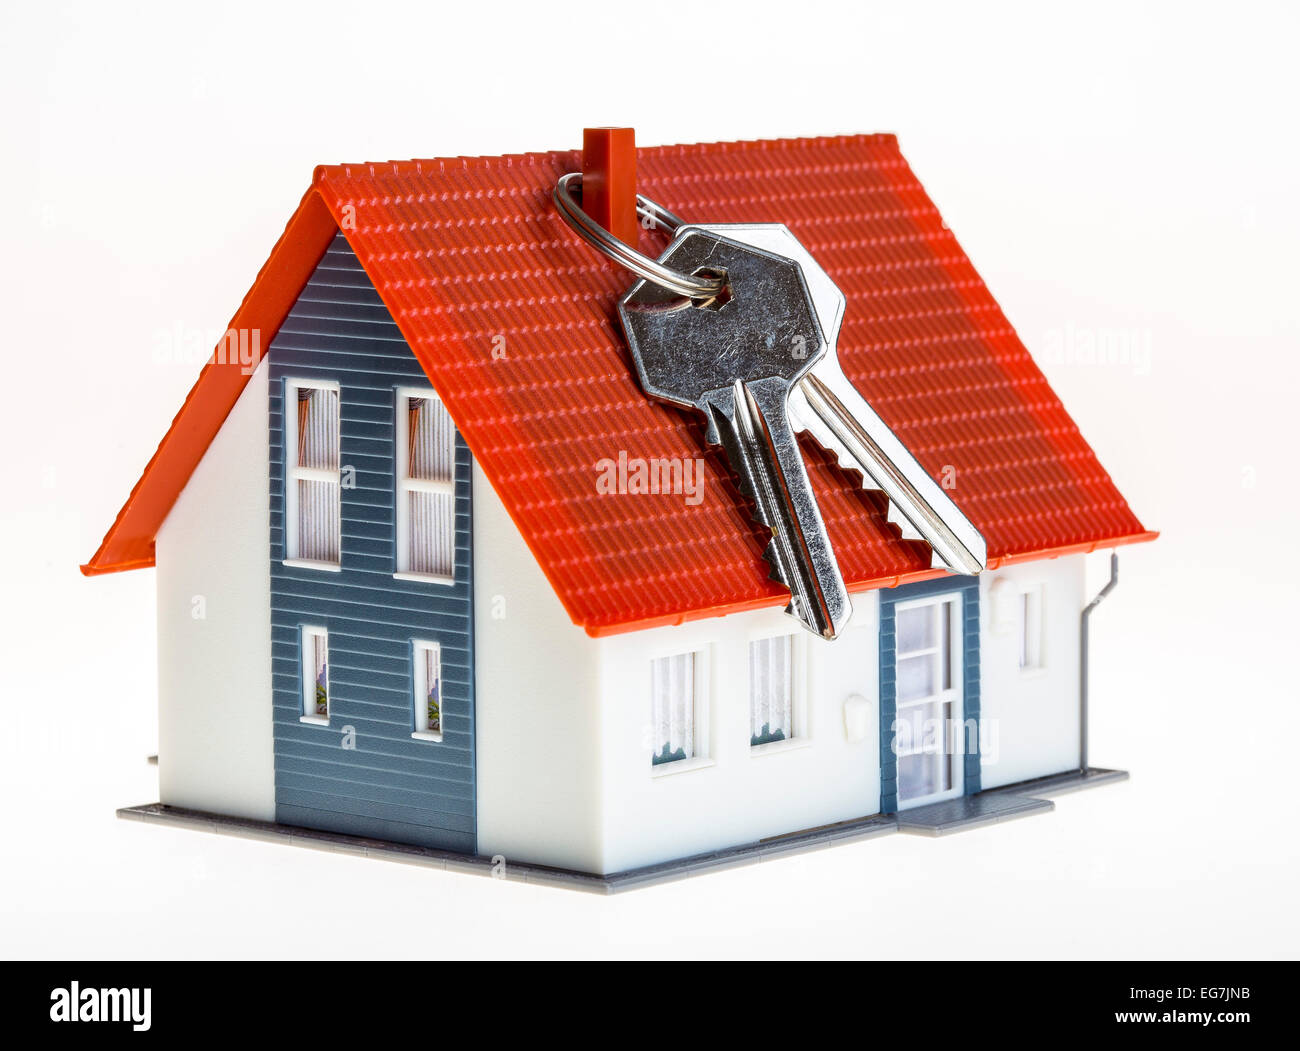 Best Kitchen Gallery: Symbolic Image House Home New House Keys Move Sold For Sale of New House Sale on rachelxblog.com